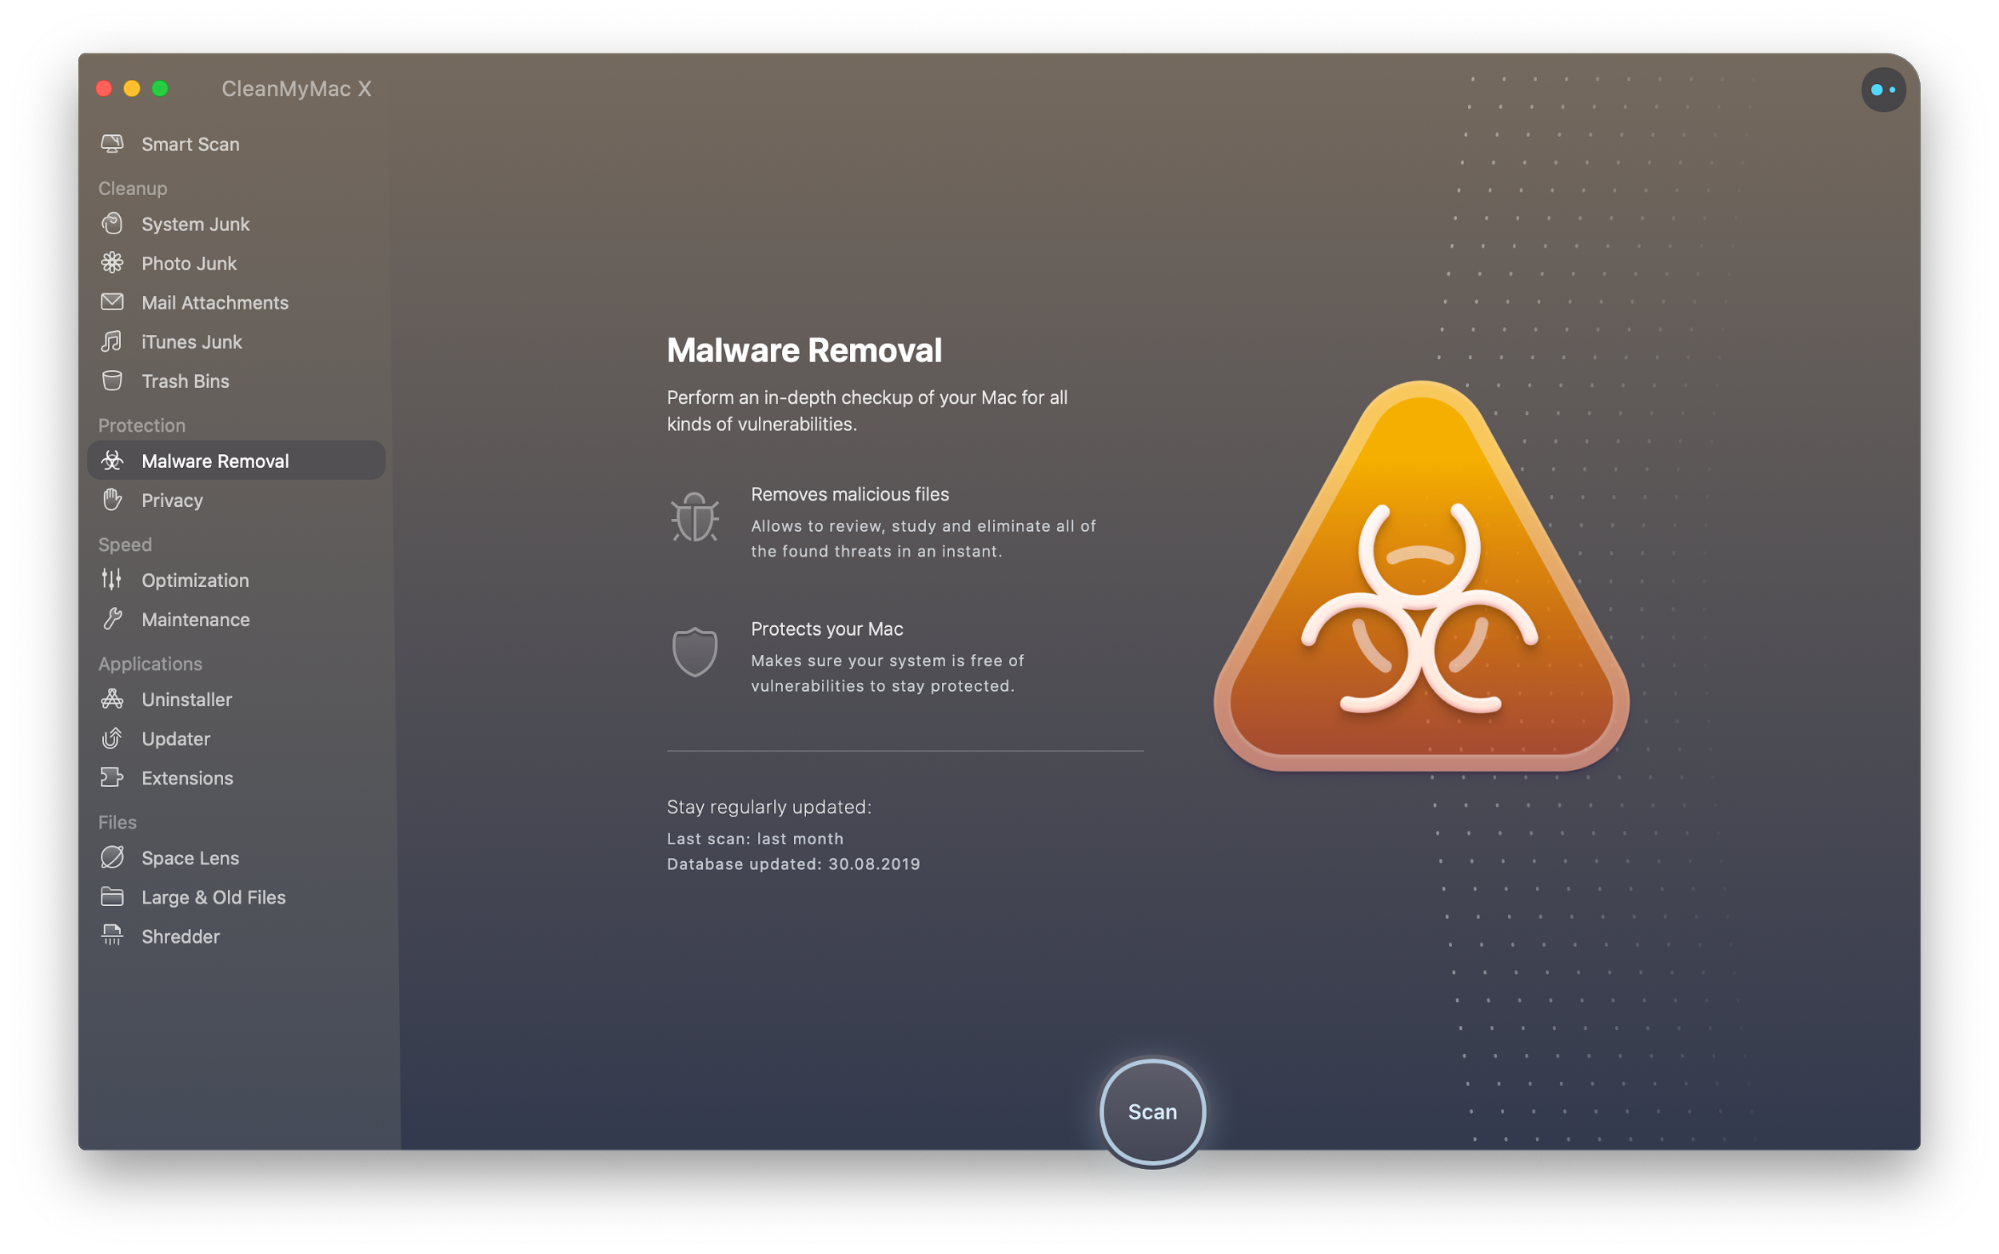 CleanMyMac X Malware Removal tool